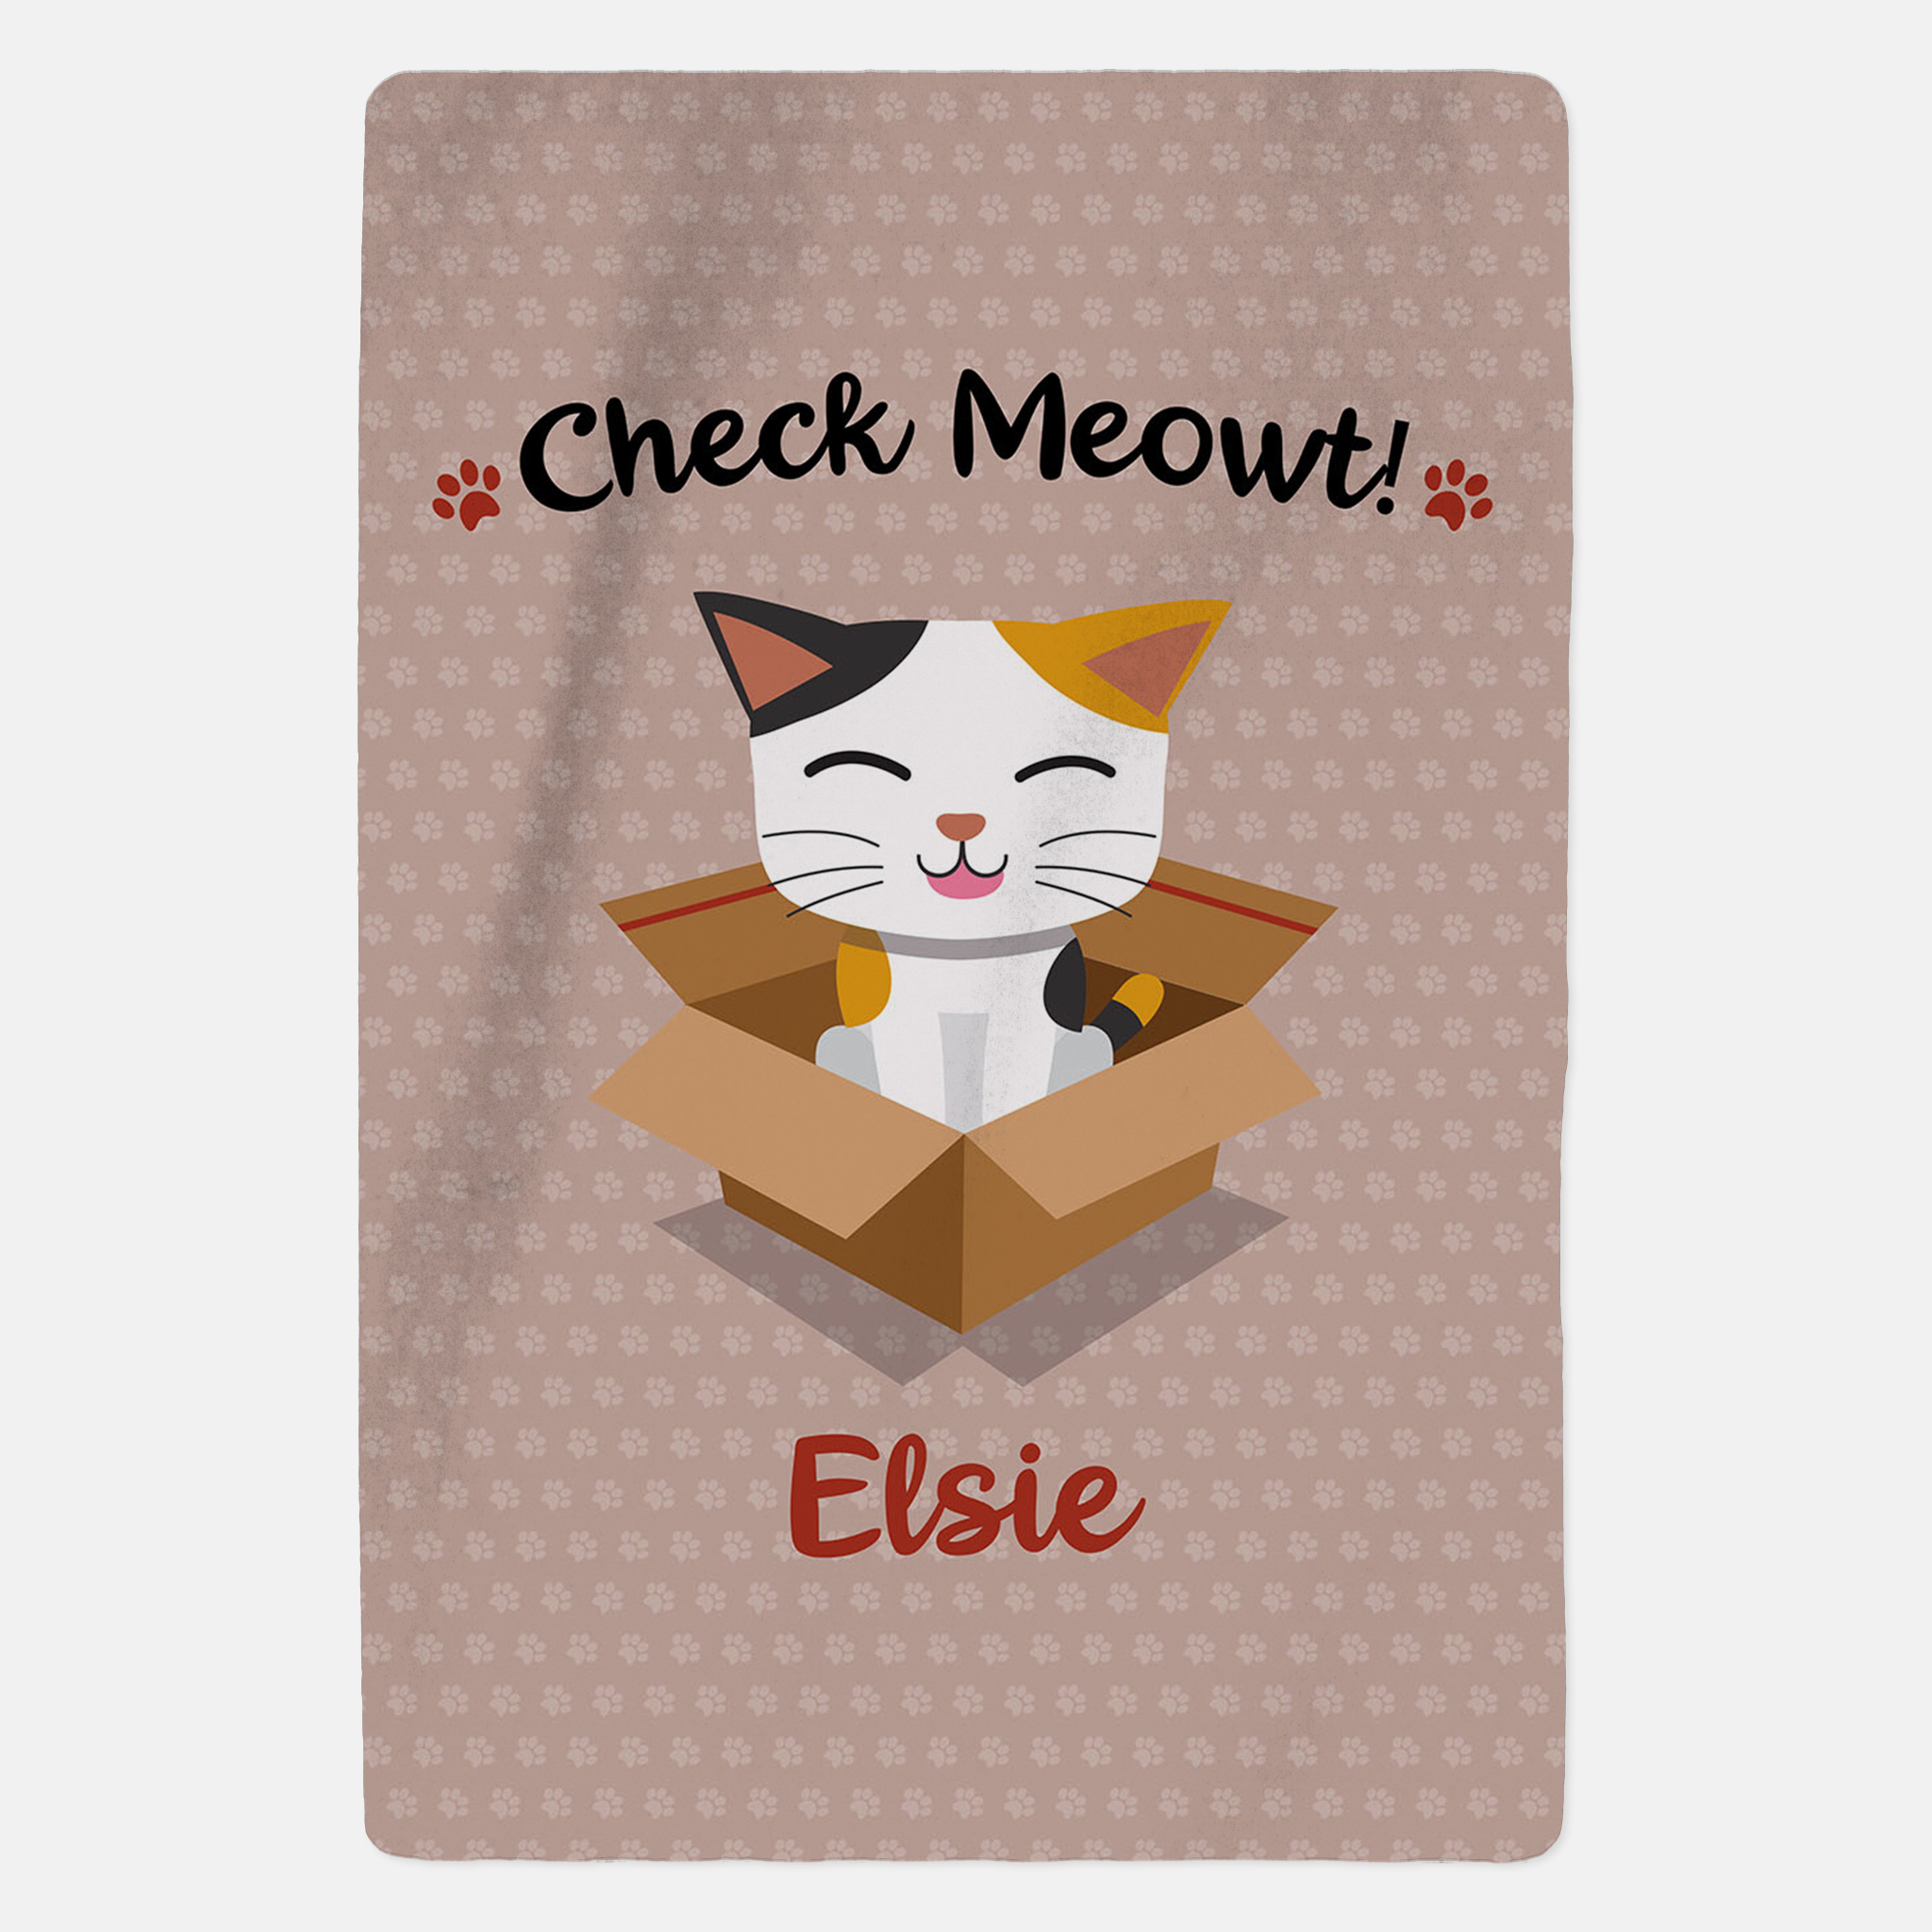 Personalised Tabby Cat Blanket - Check Meowt - Pink